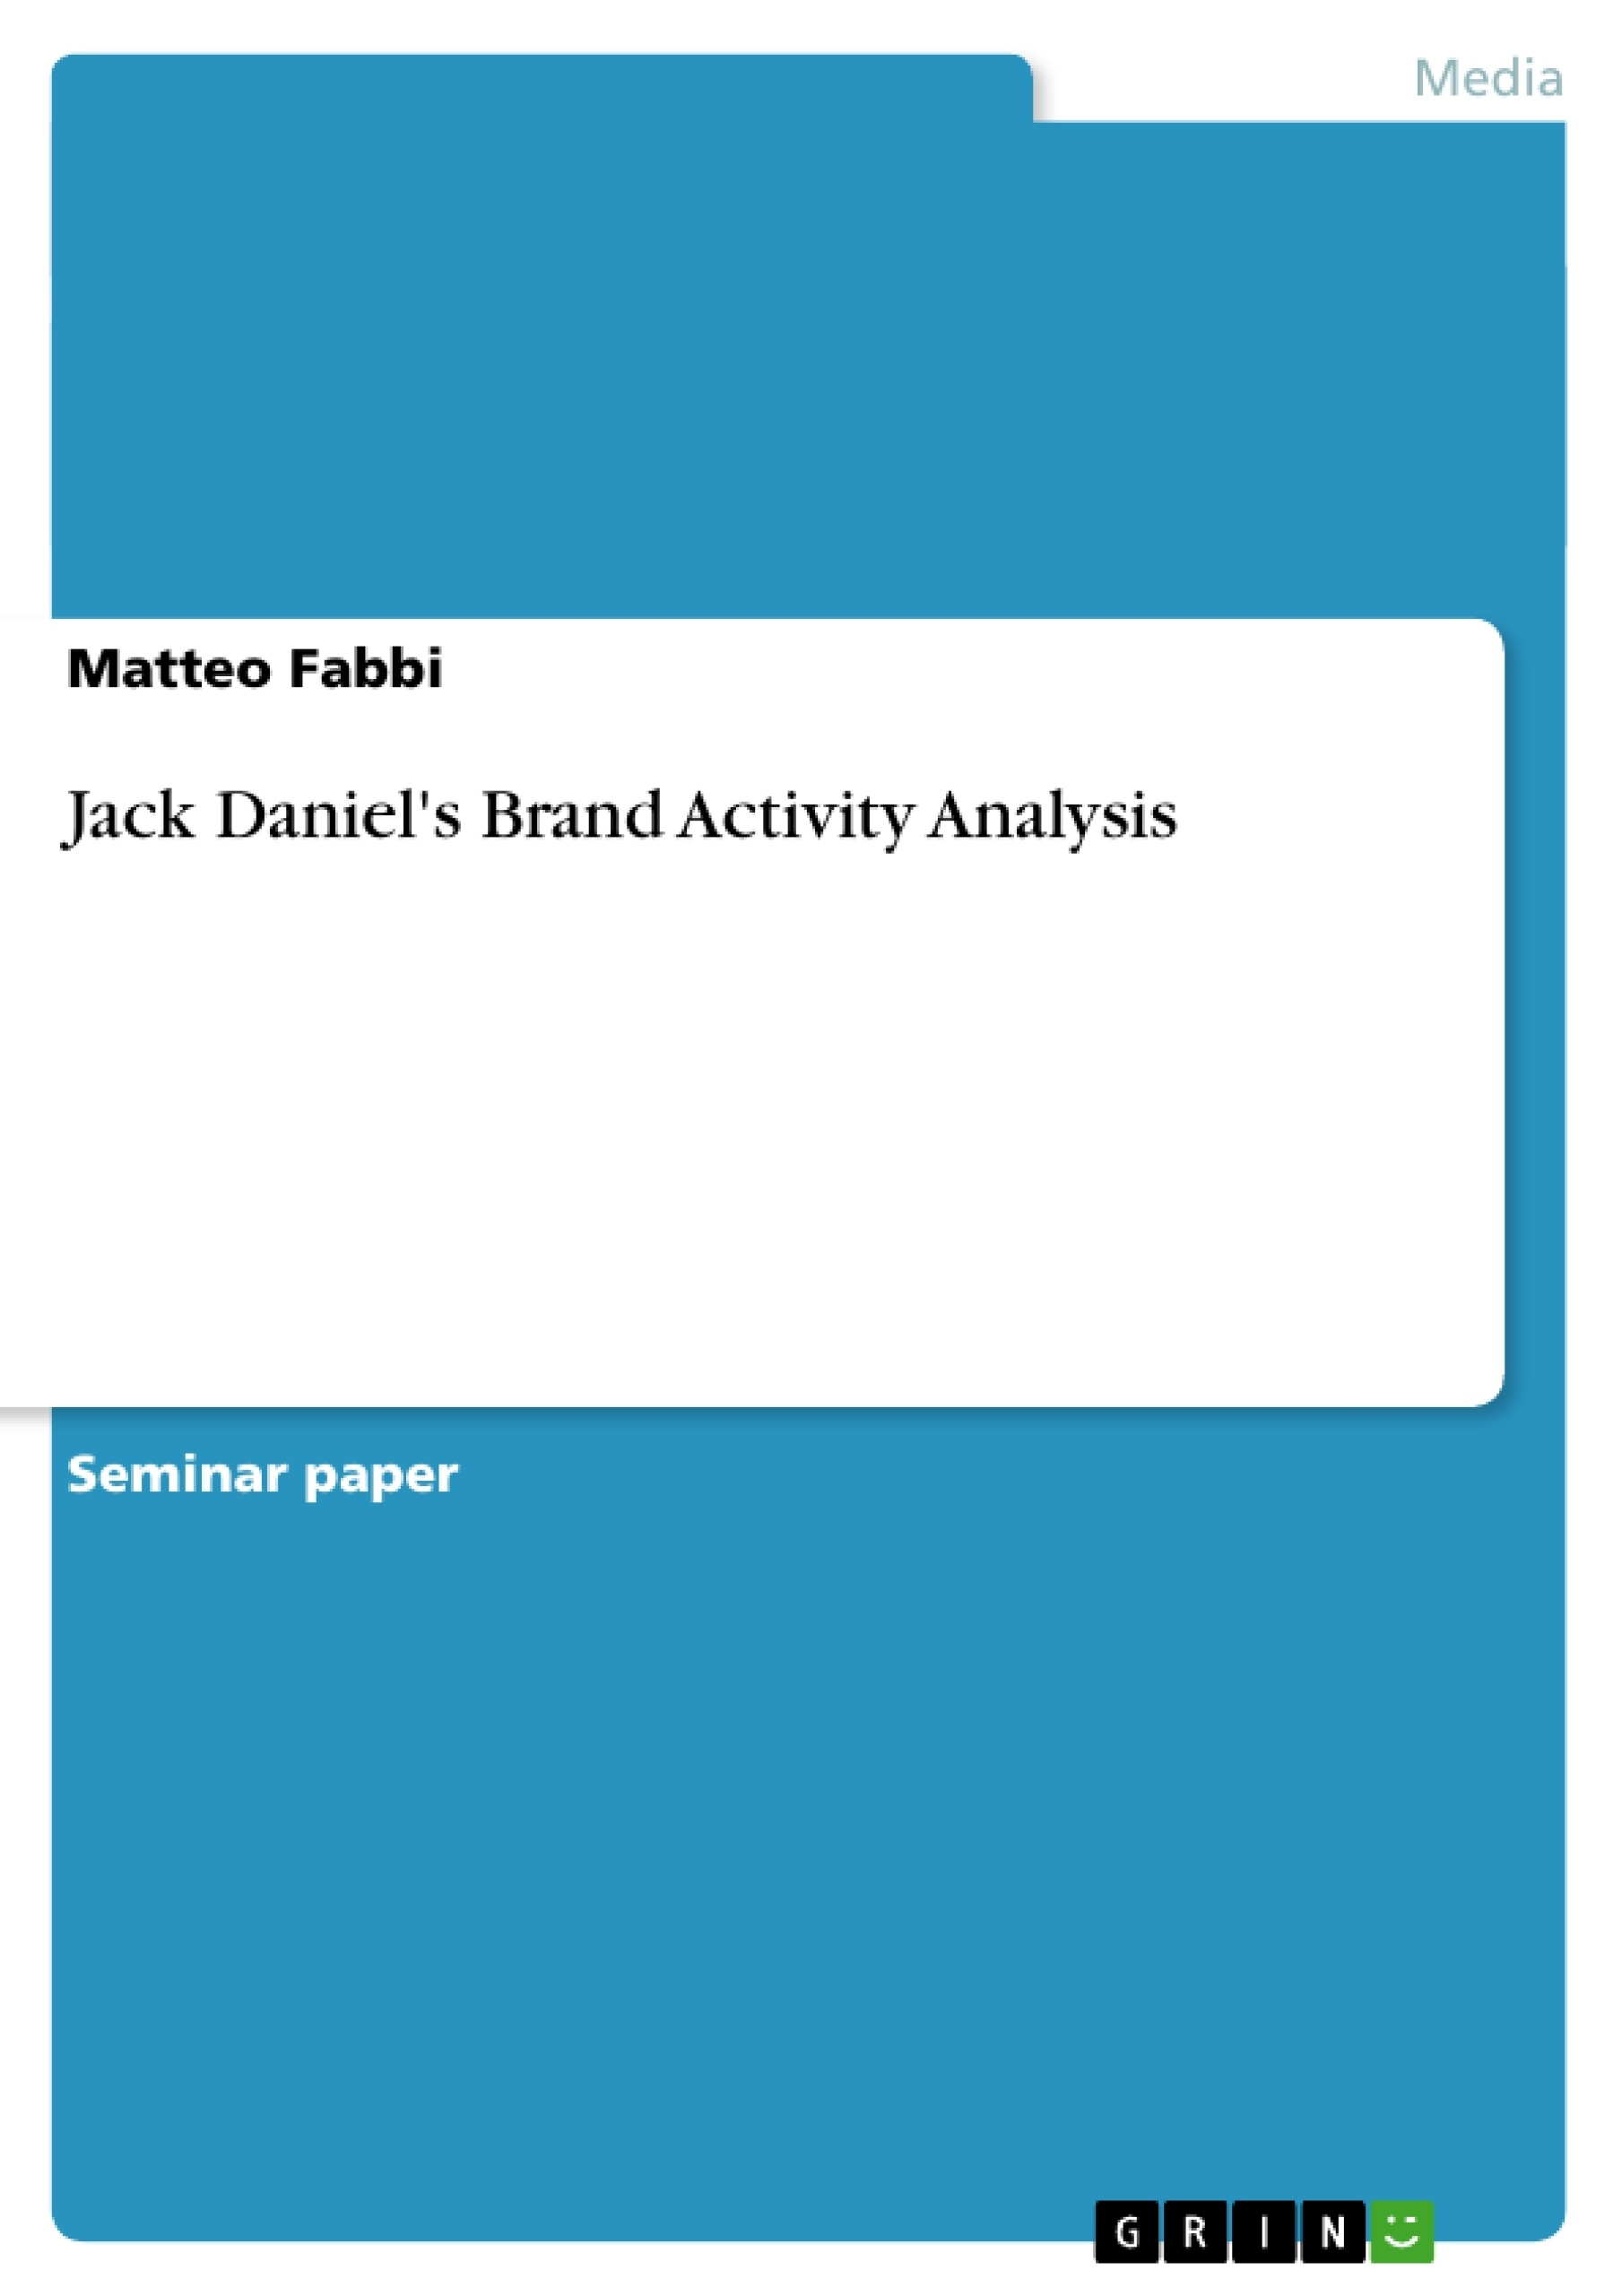 Title: Jack Daniel's Brand Activity Analysis